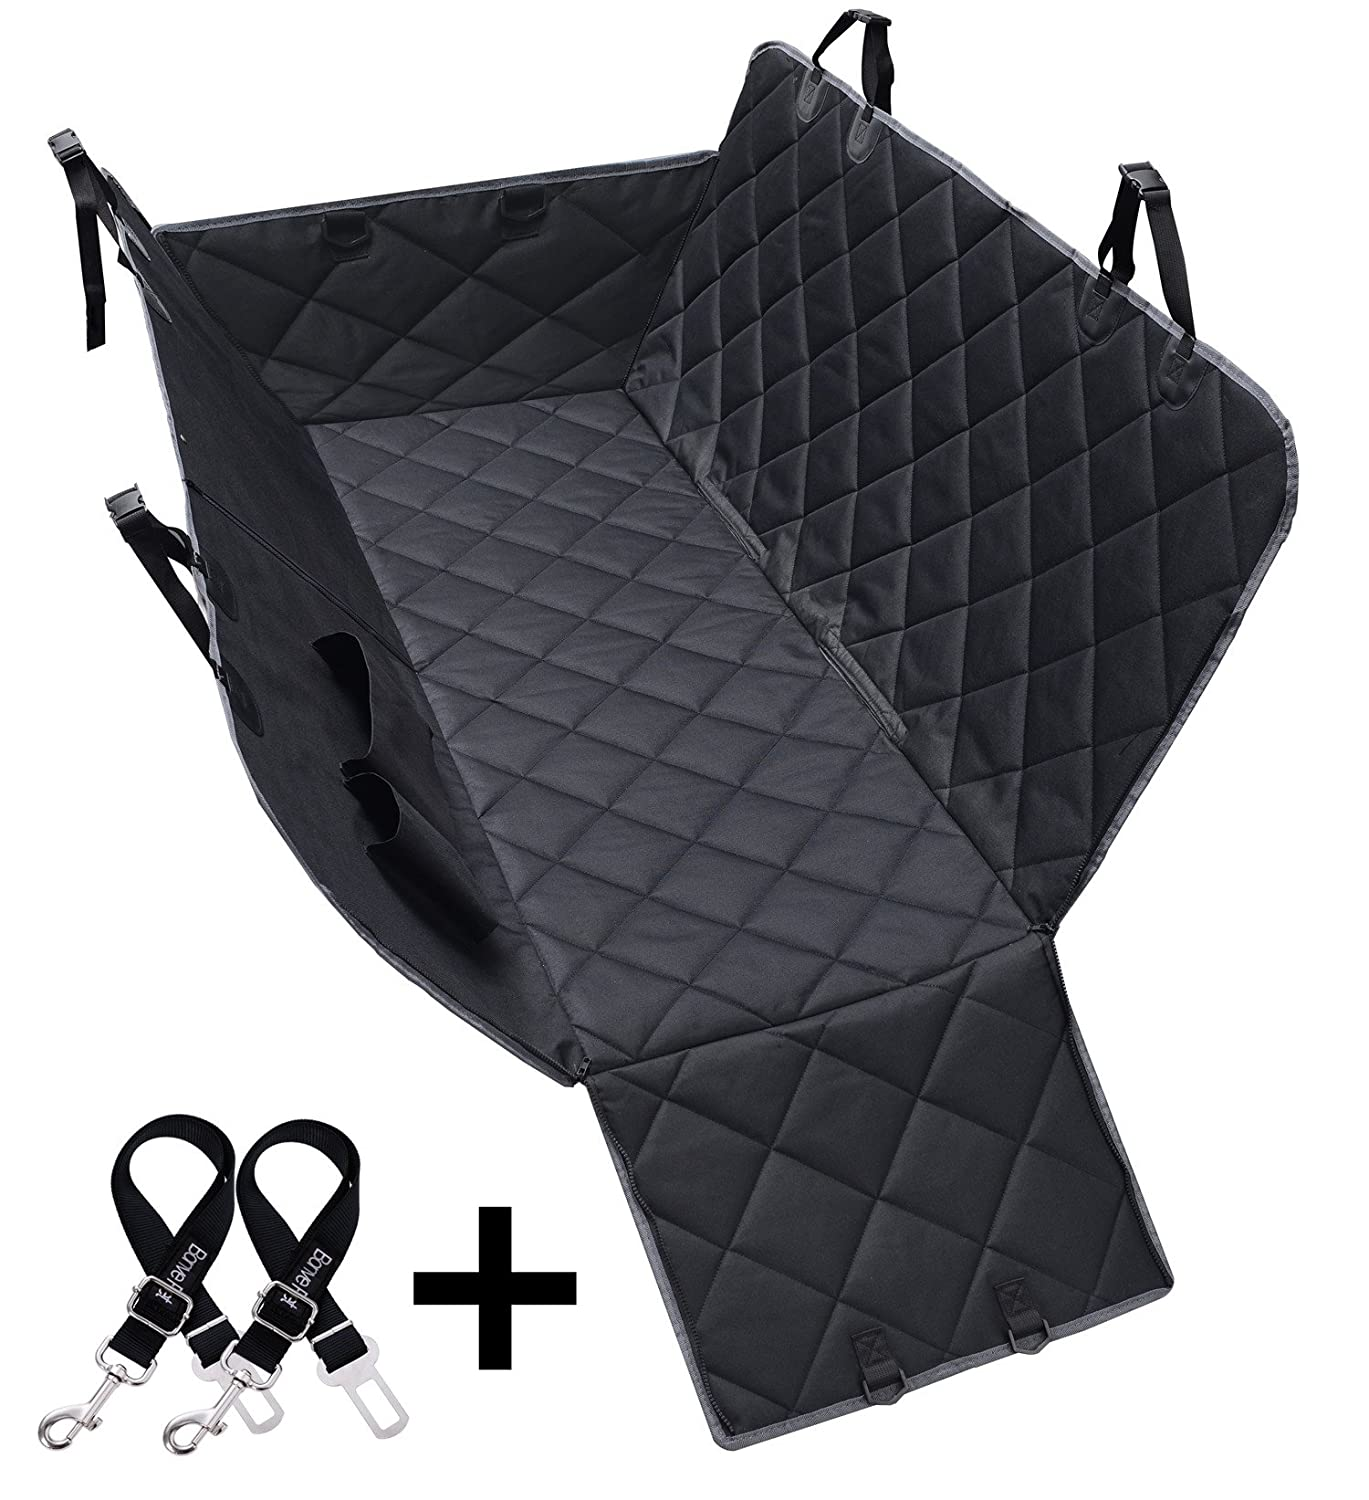 The Best Pet Car Seat Covers In 2018: Reviews & Buying Guide 14